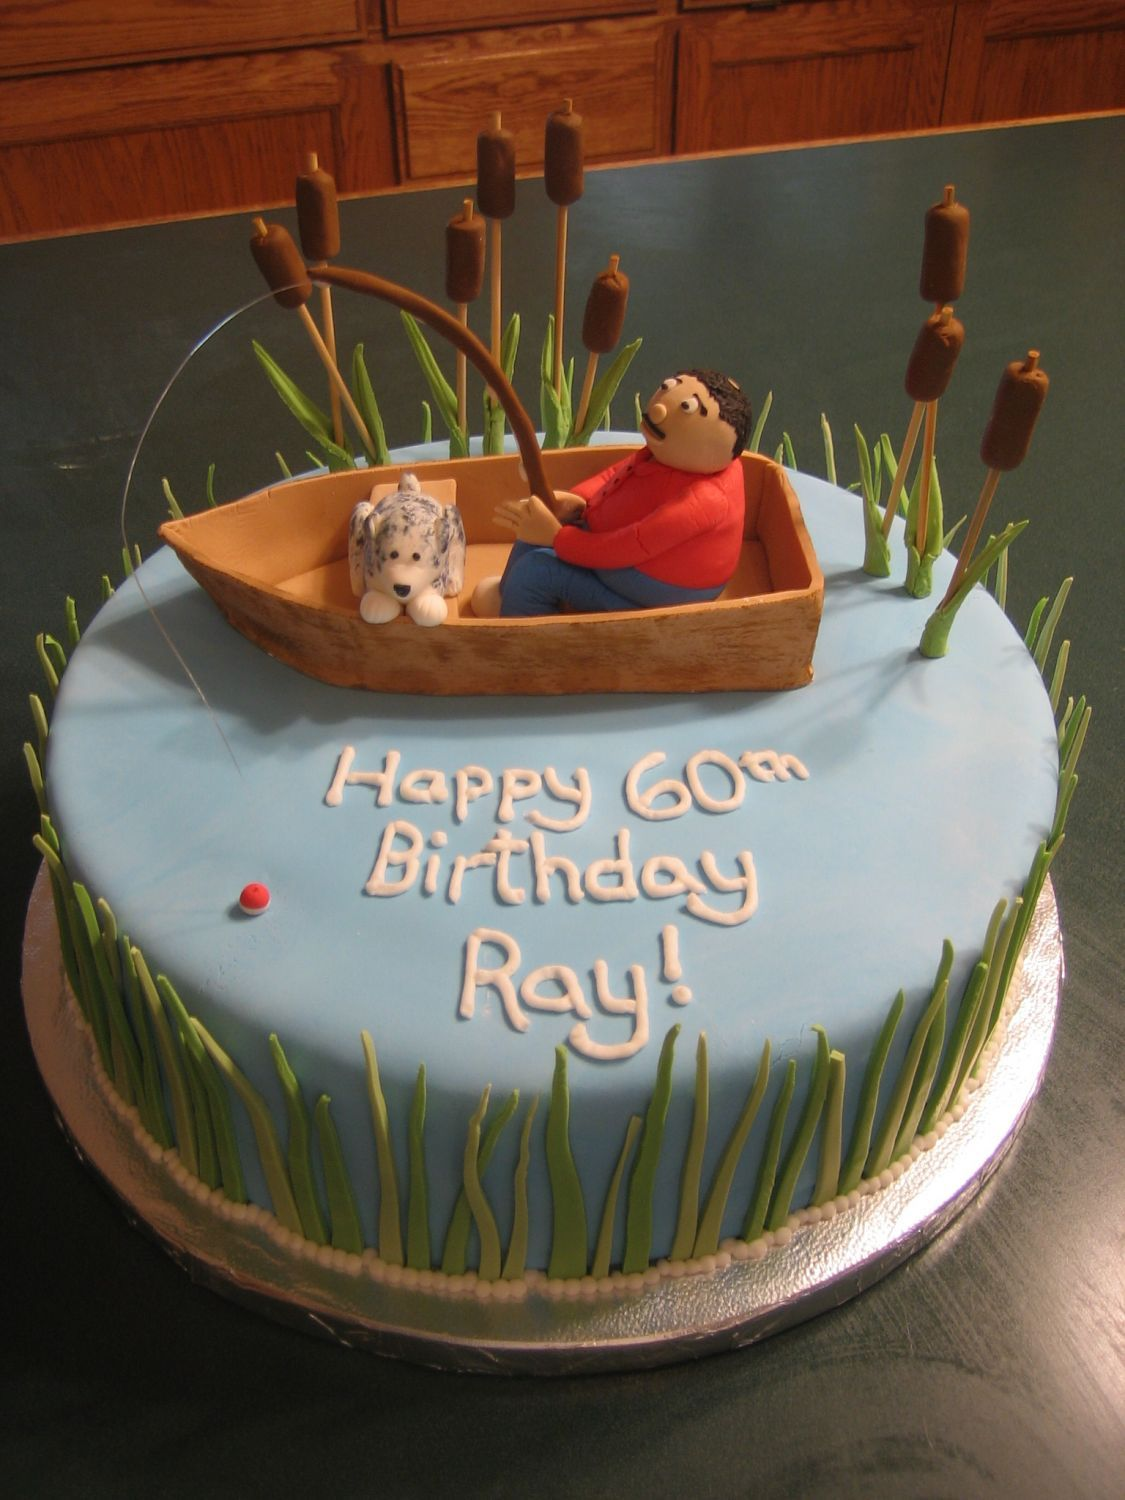 Laney Likes This One Mostly For The Dog Boat Cake Fish Cake Birthday 60th Birthday Cakes